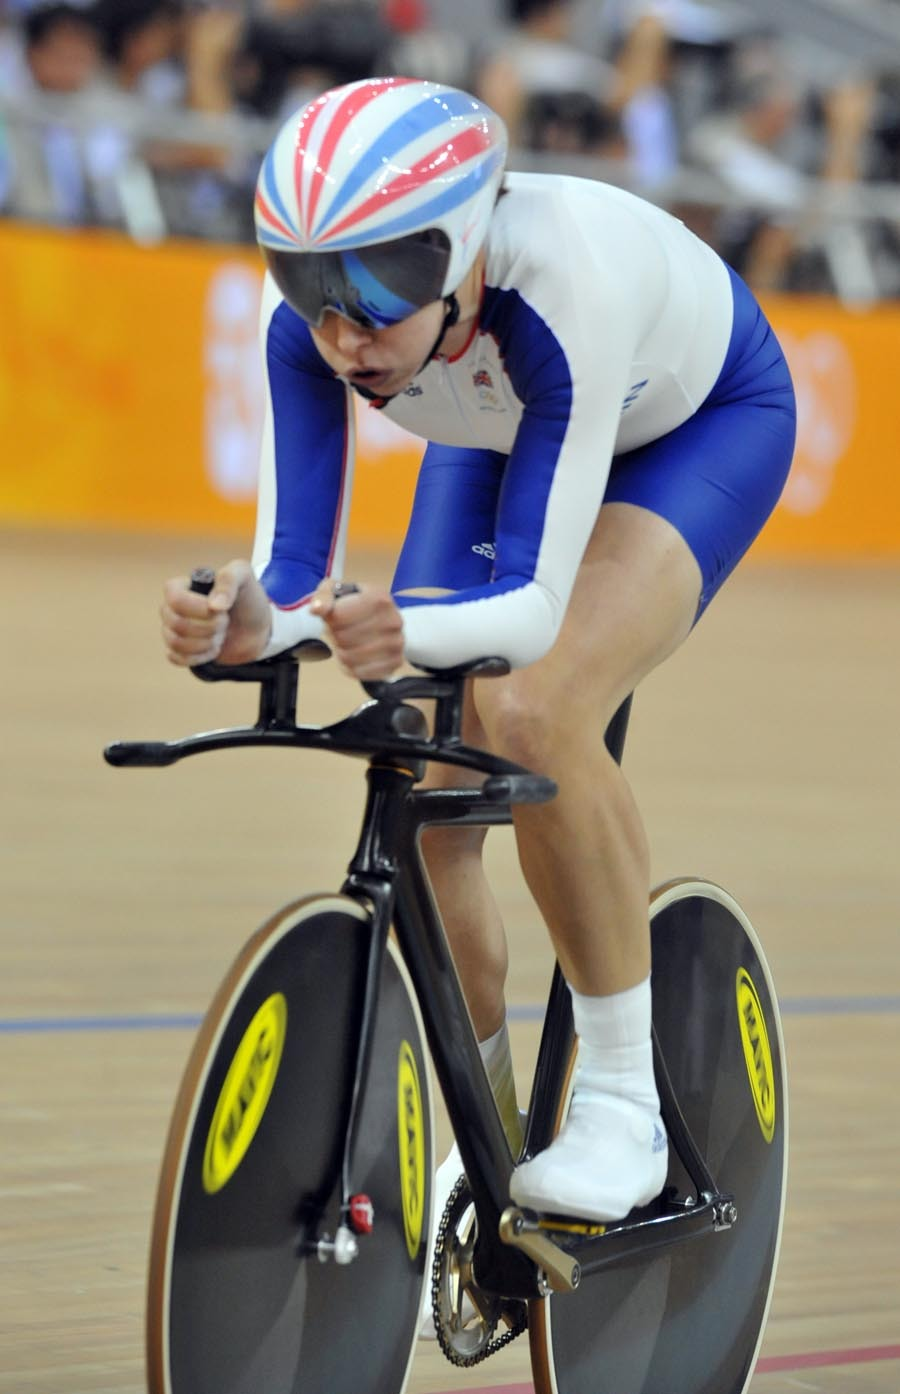 Rebecca Romero qualifying individual pursuit Olympics 2008